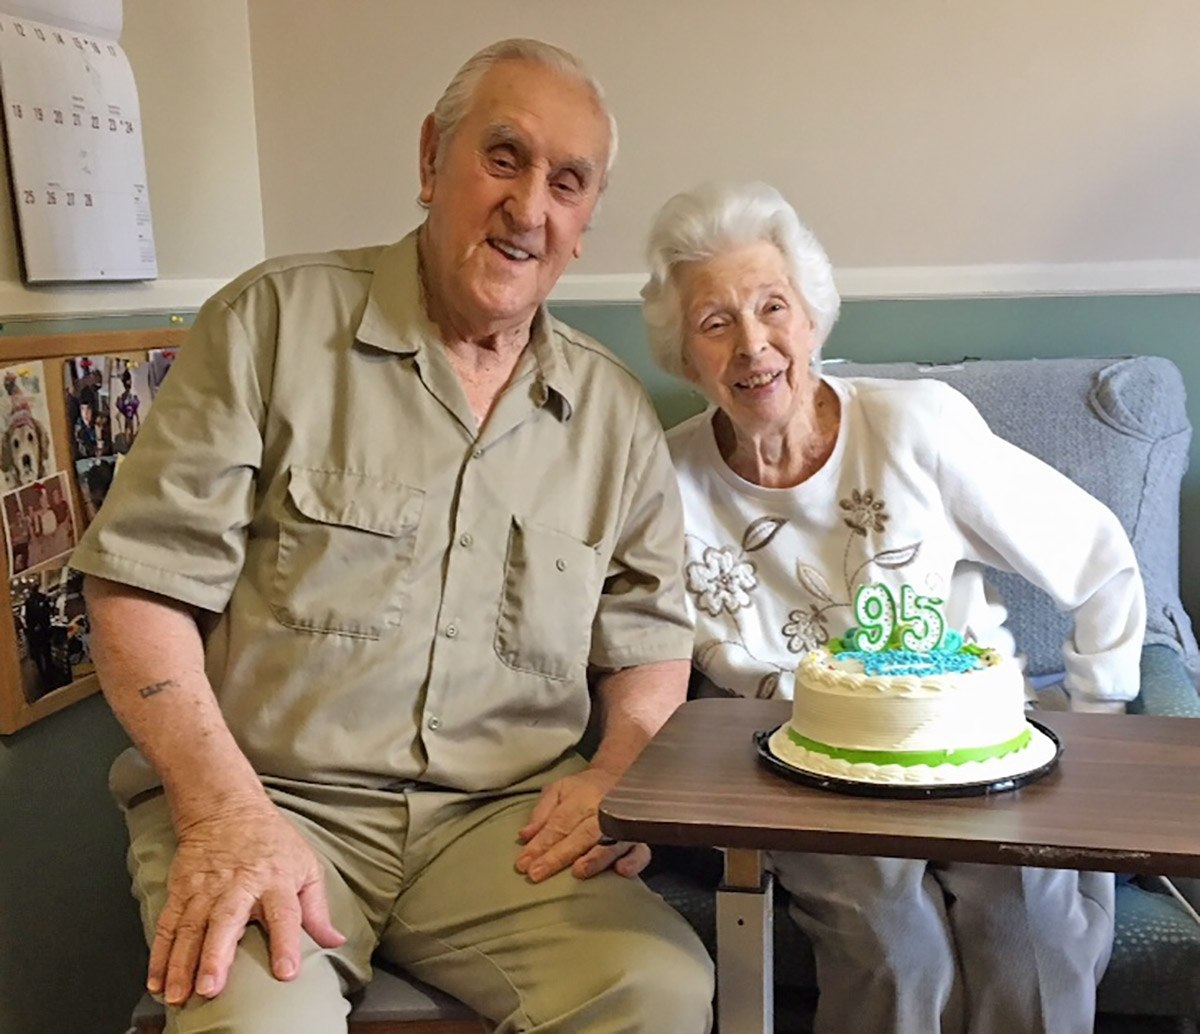 Mendonsa passed away at the assisted-living facility where lived he with his wife, Rita (Source: The Navy Times)